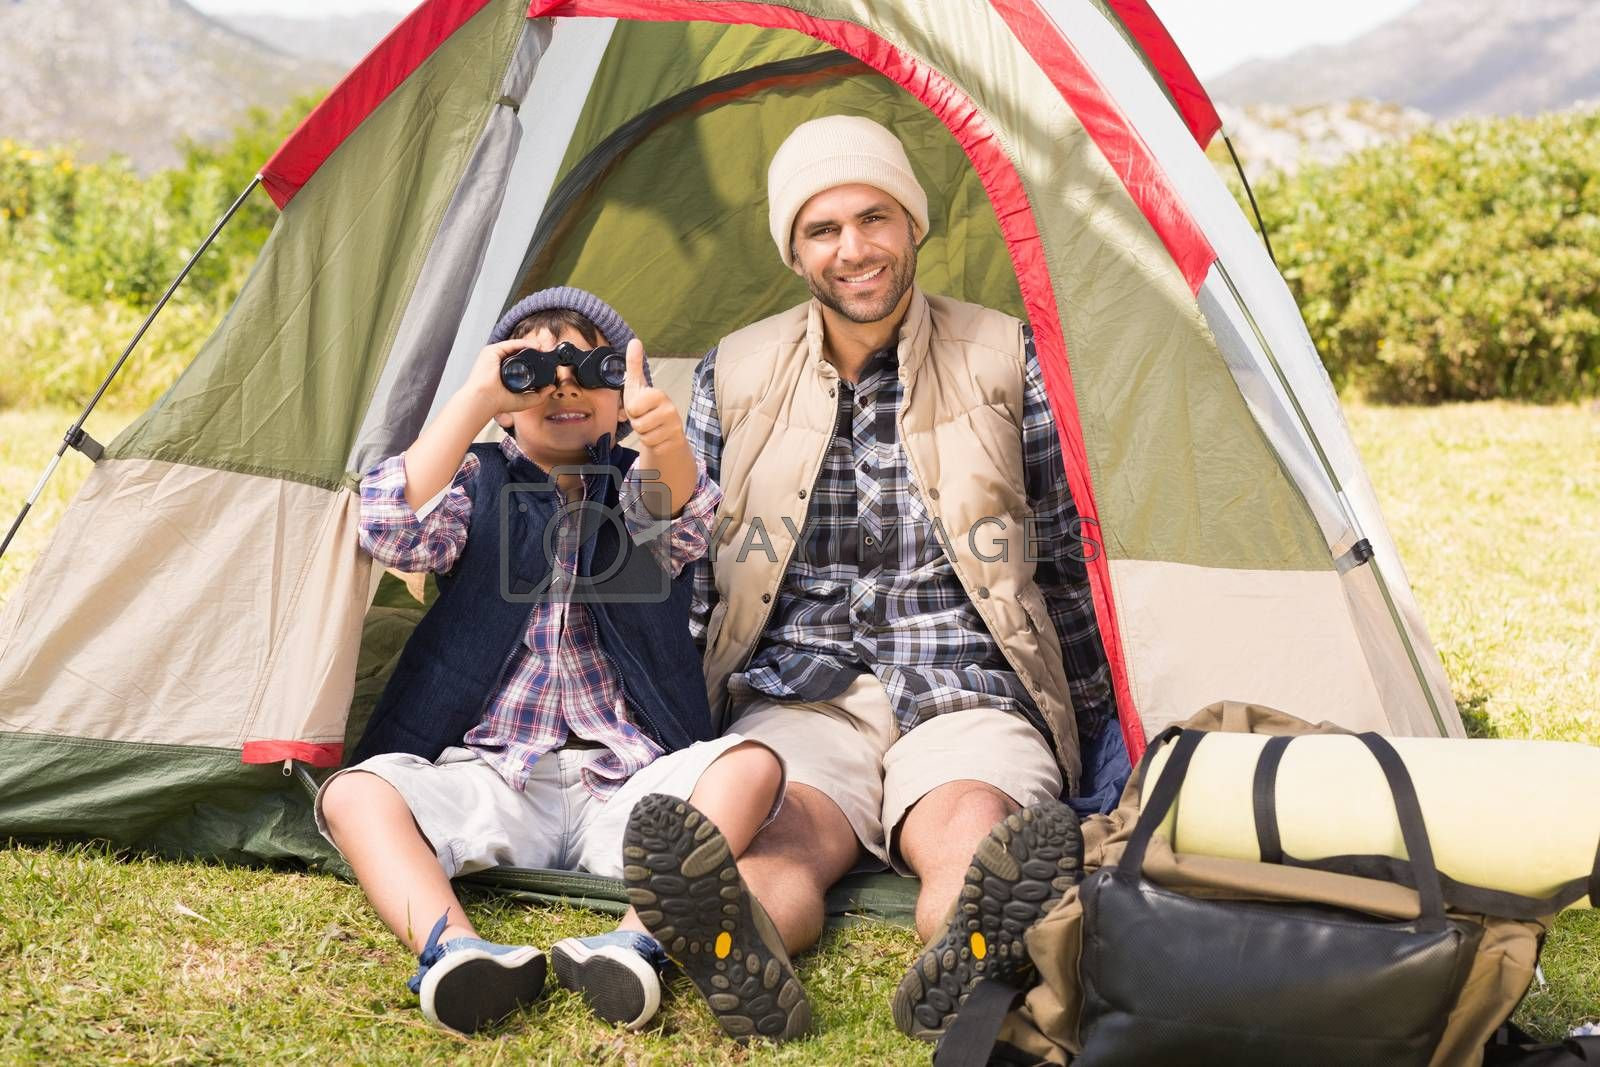 Father and son beside their tent by Wavebreakmedia